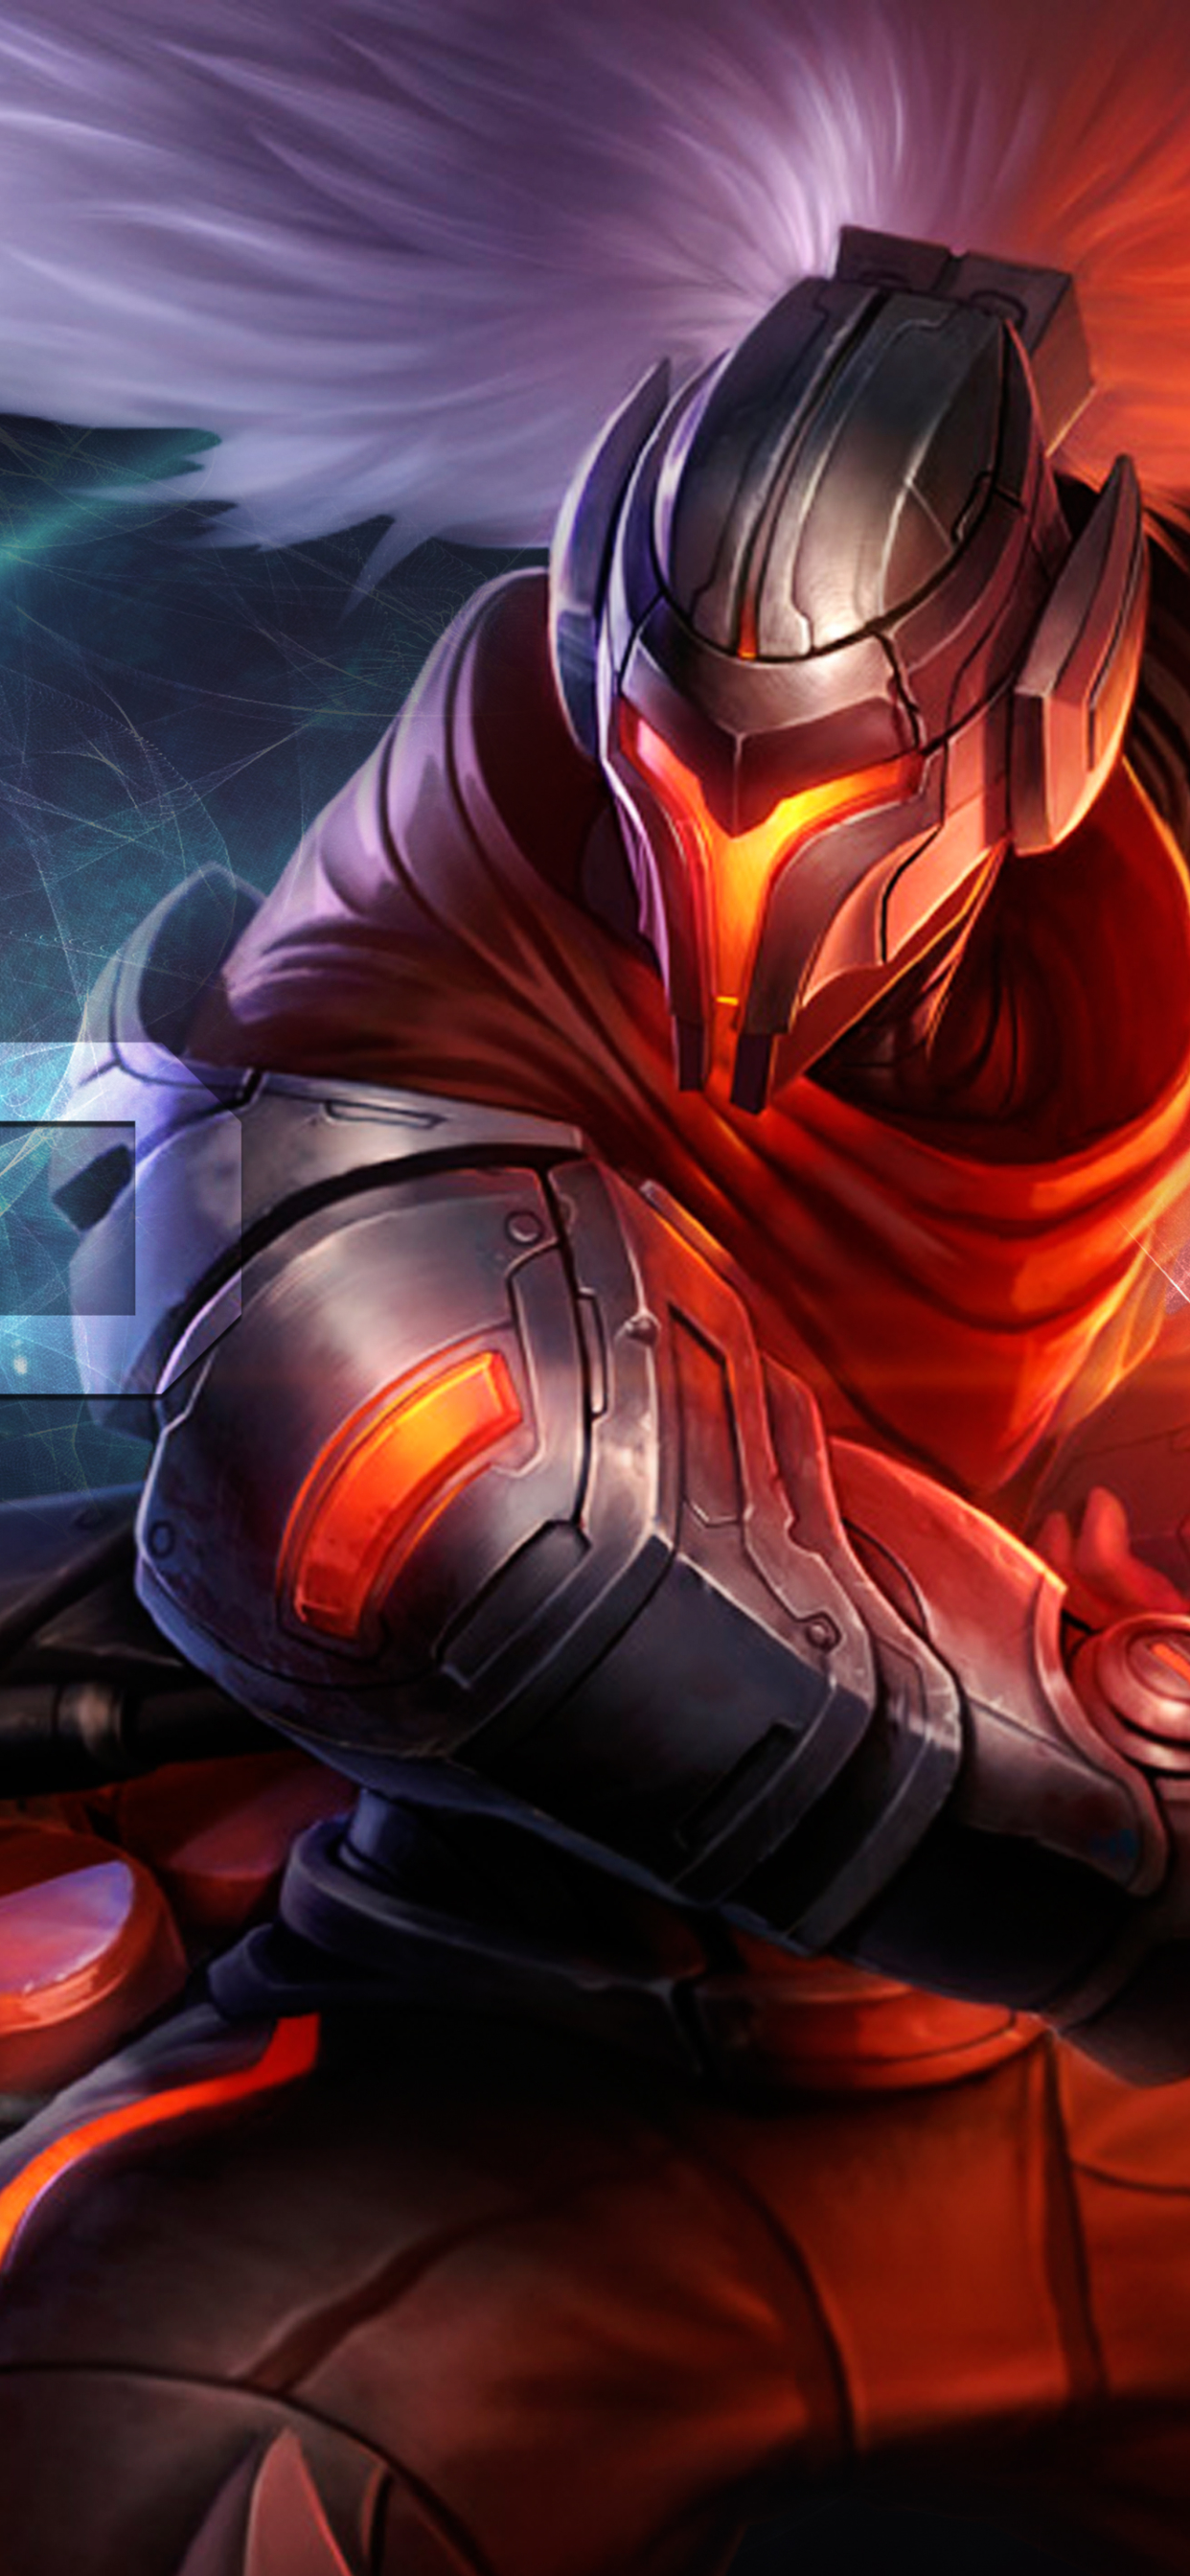 Video Game League Of Legends 1242x2688 Wallpaper Id 771433